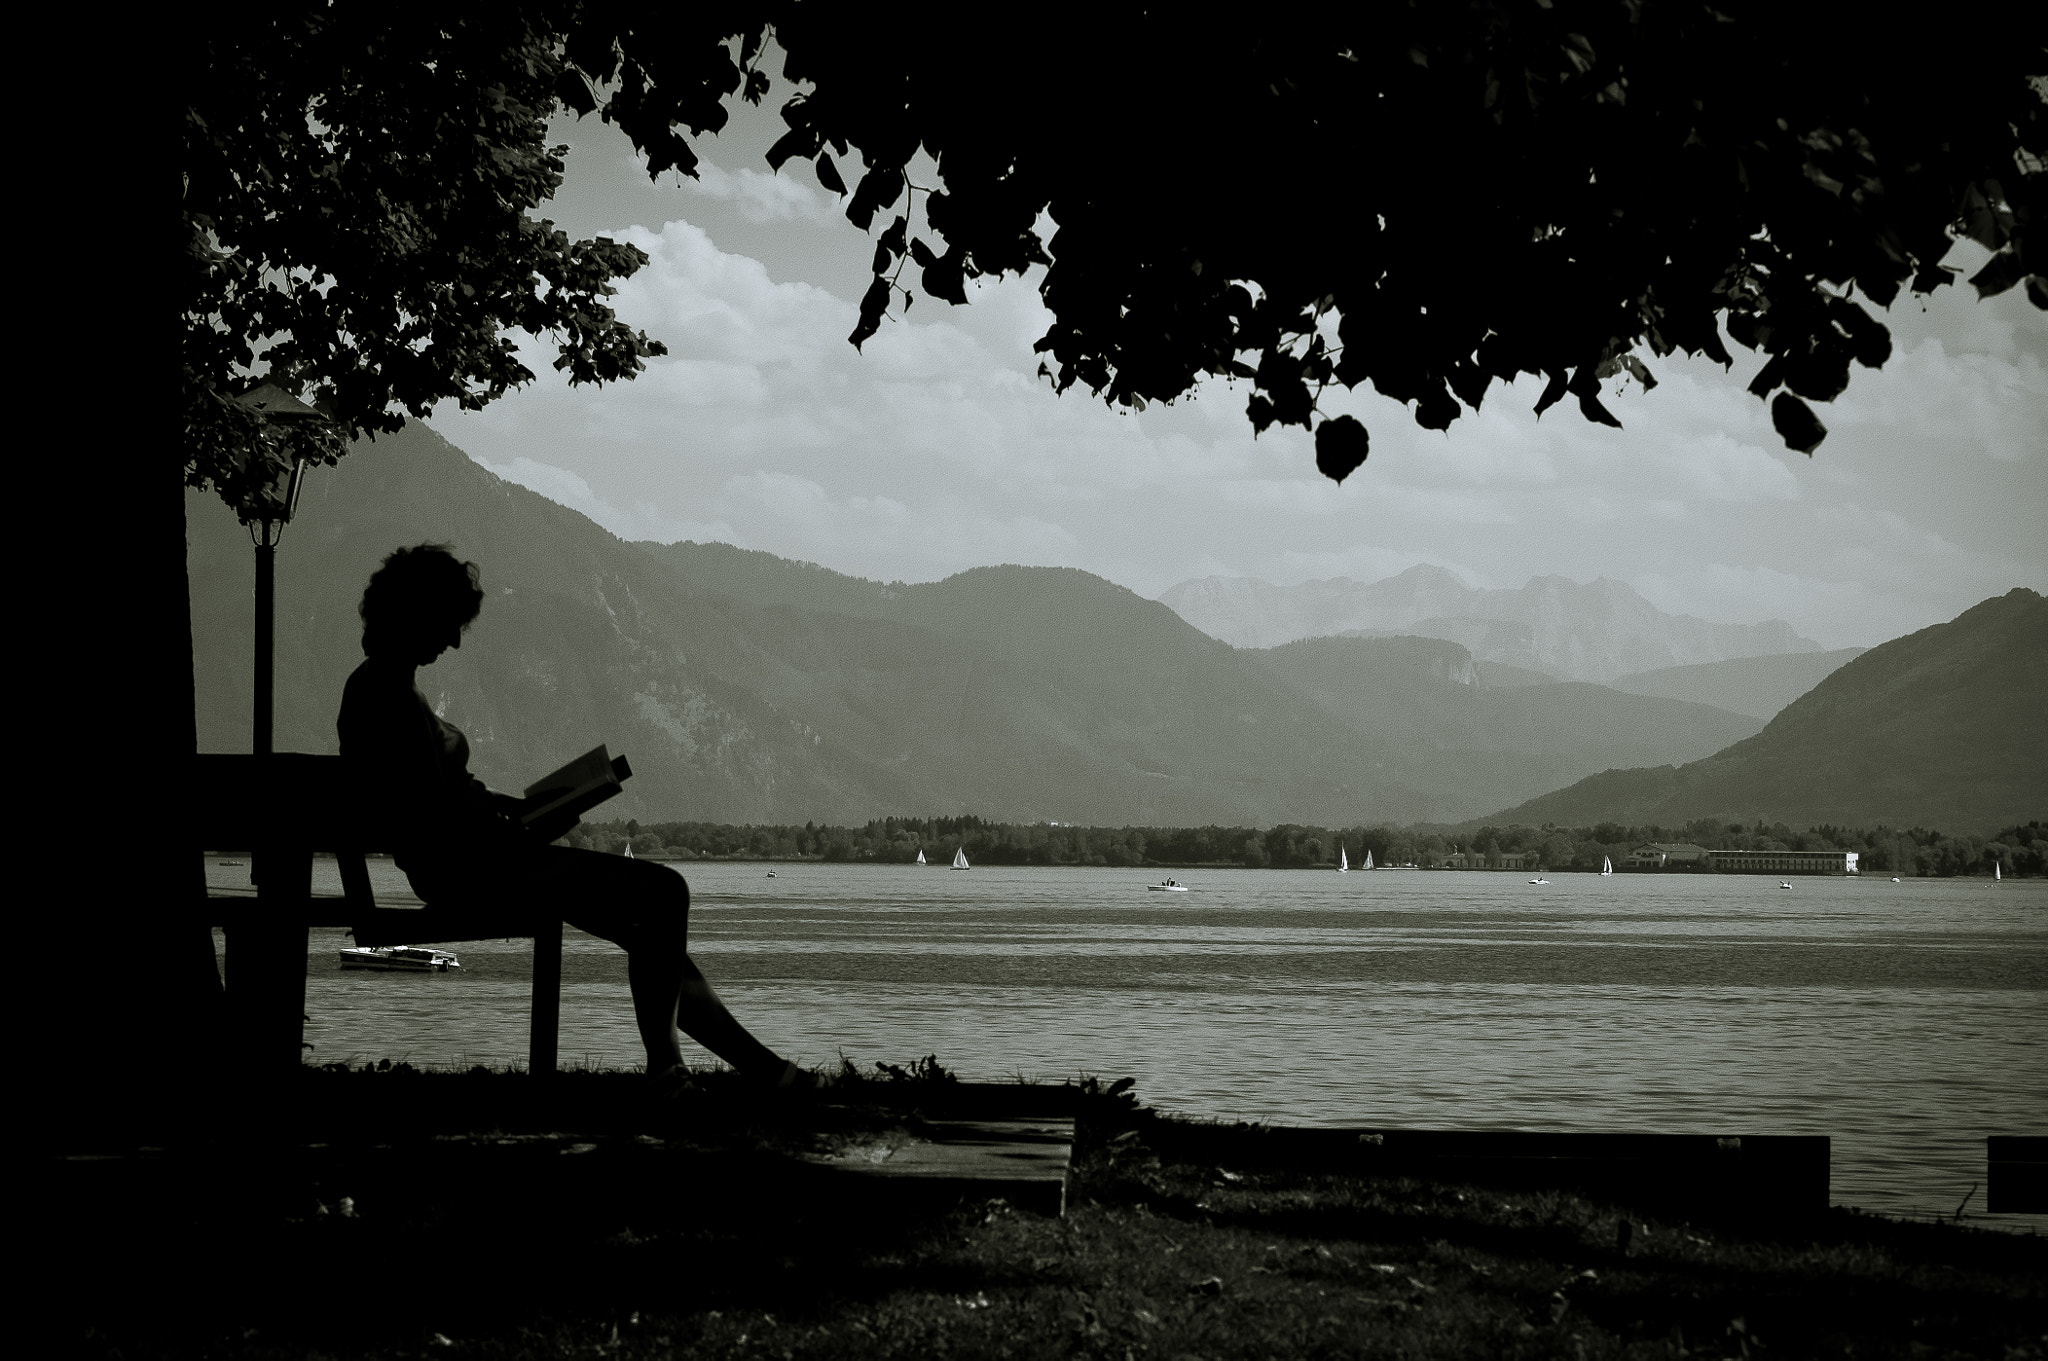 Photograph Reading by the lakeside by Hartmut Haerer on 500px